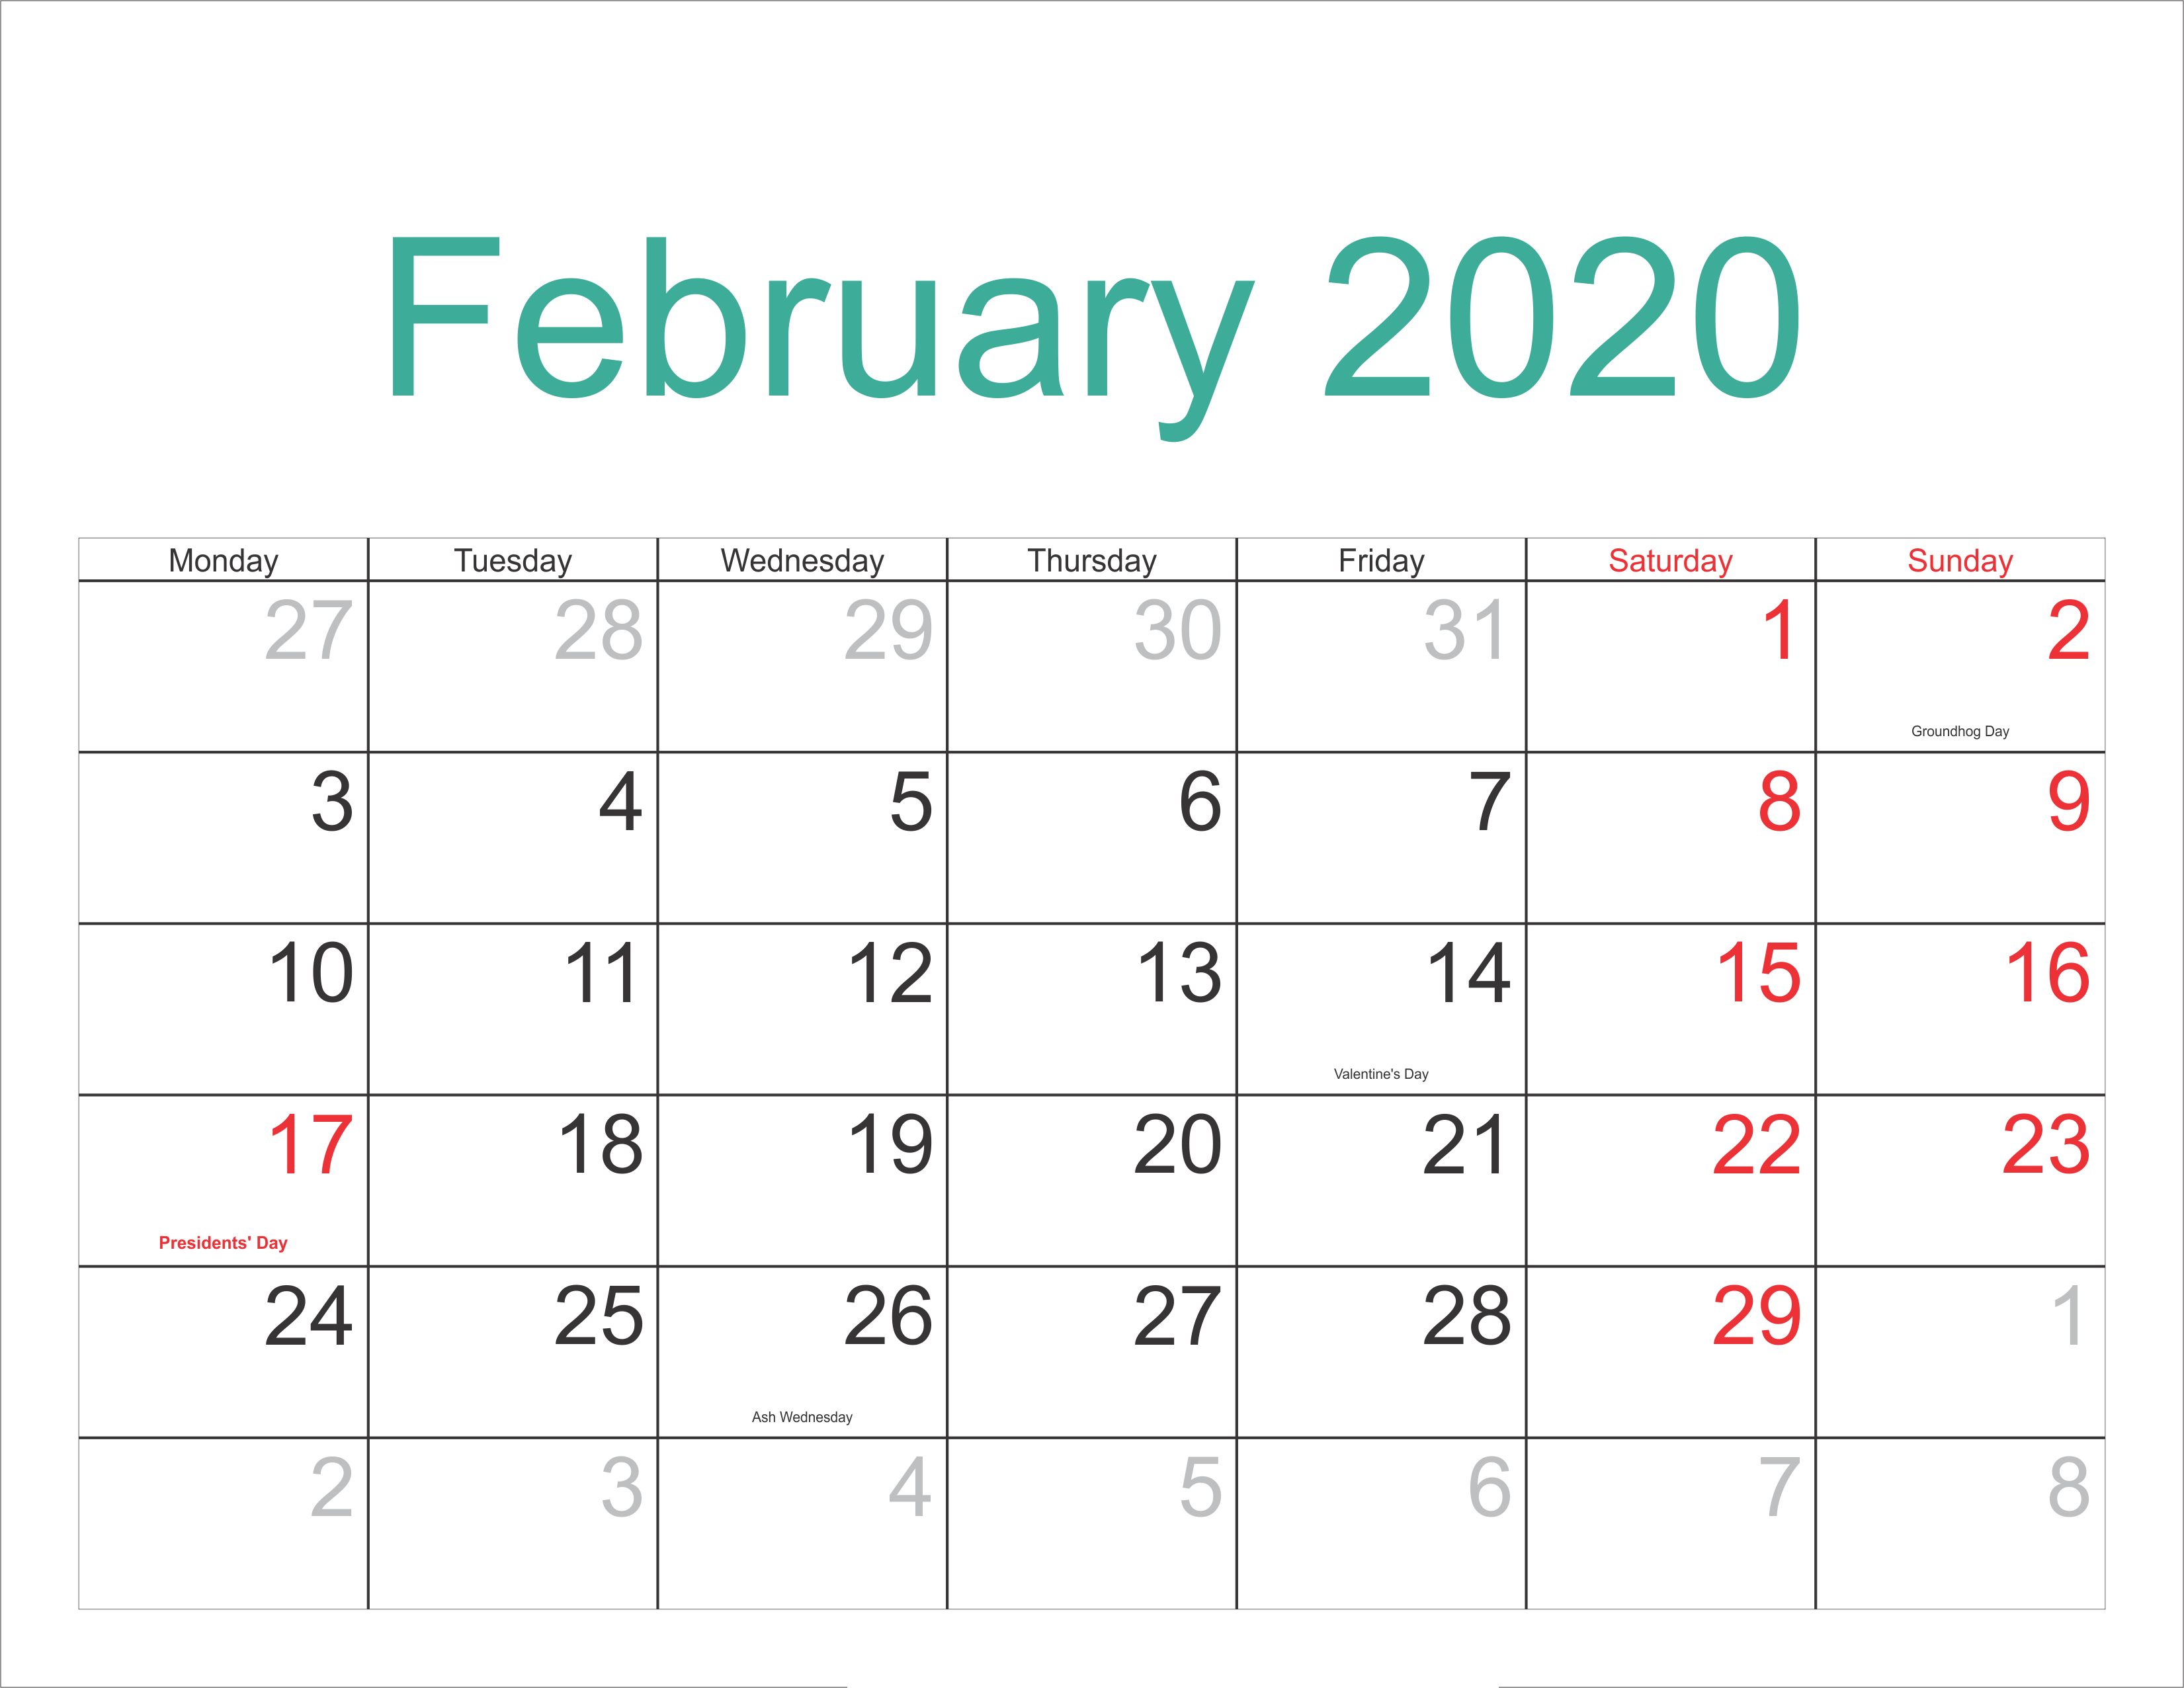 February 2020 Calendar With Holidays Sheet